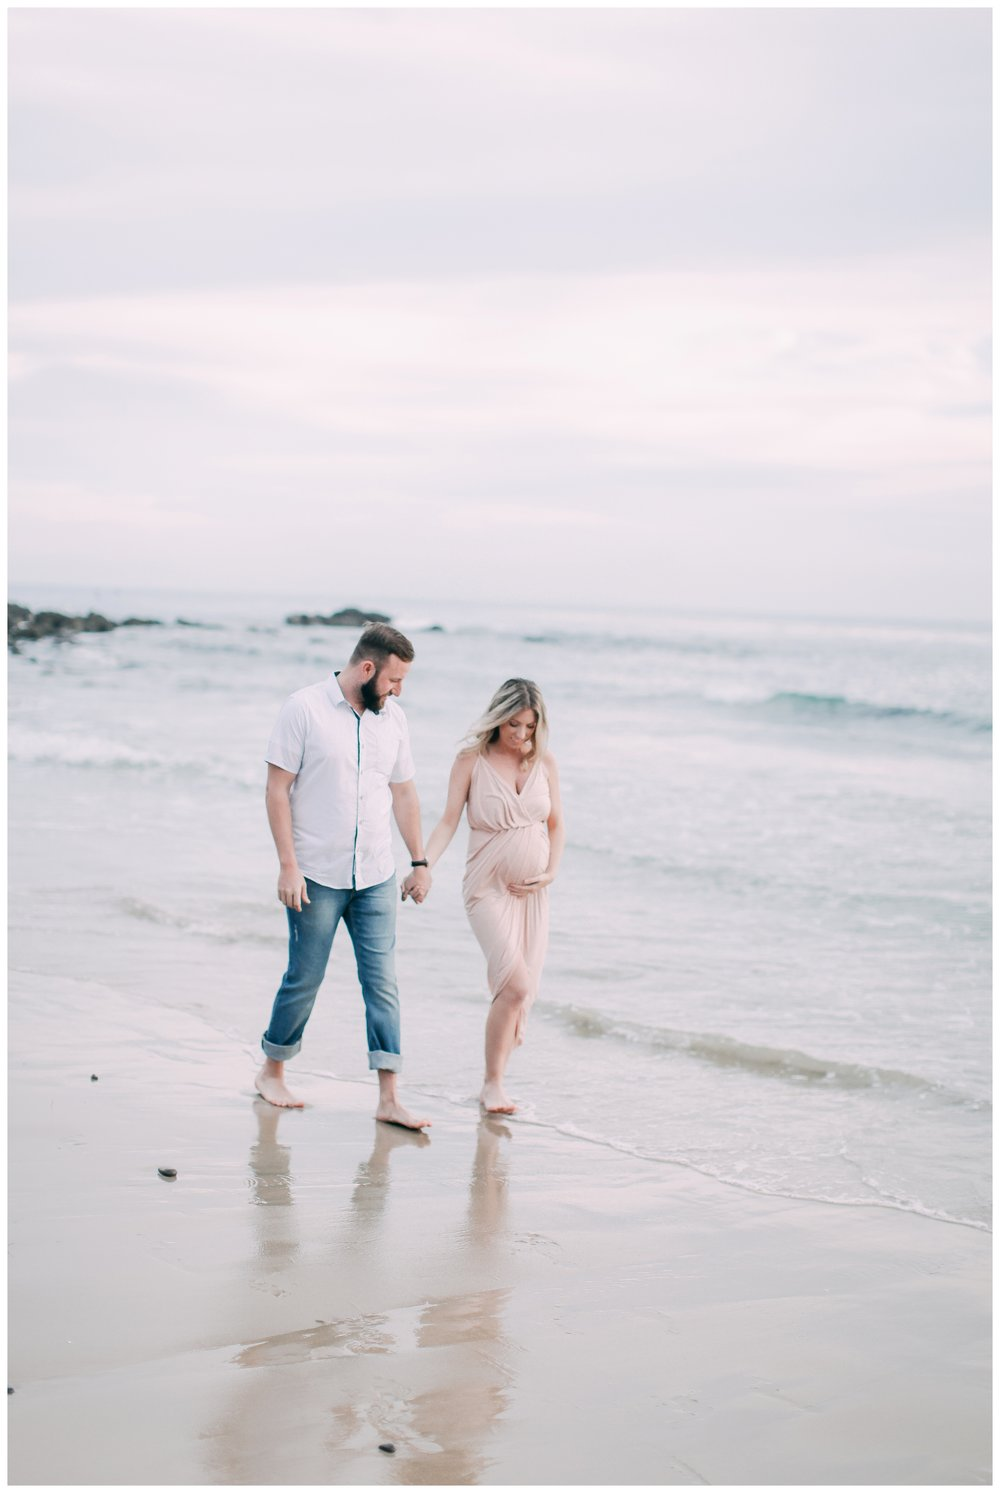 Orange_county_maternity_photographer_cori_kleckner_photography_0054.jpg